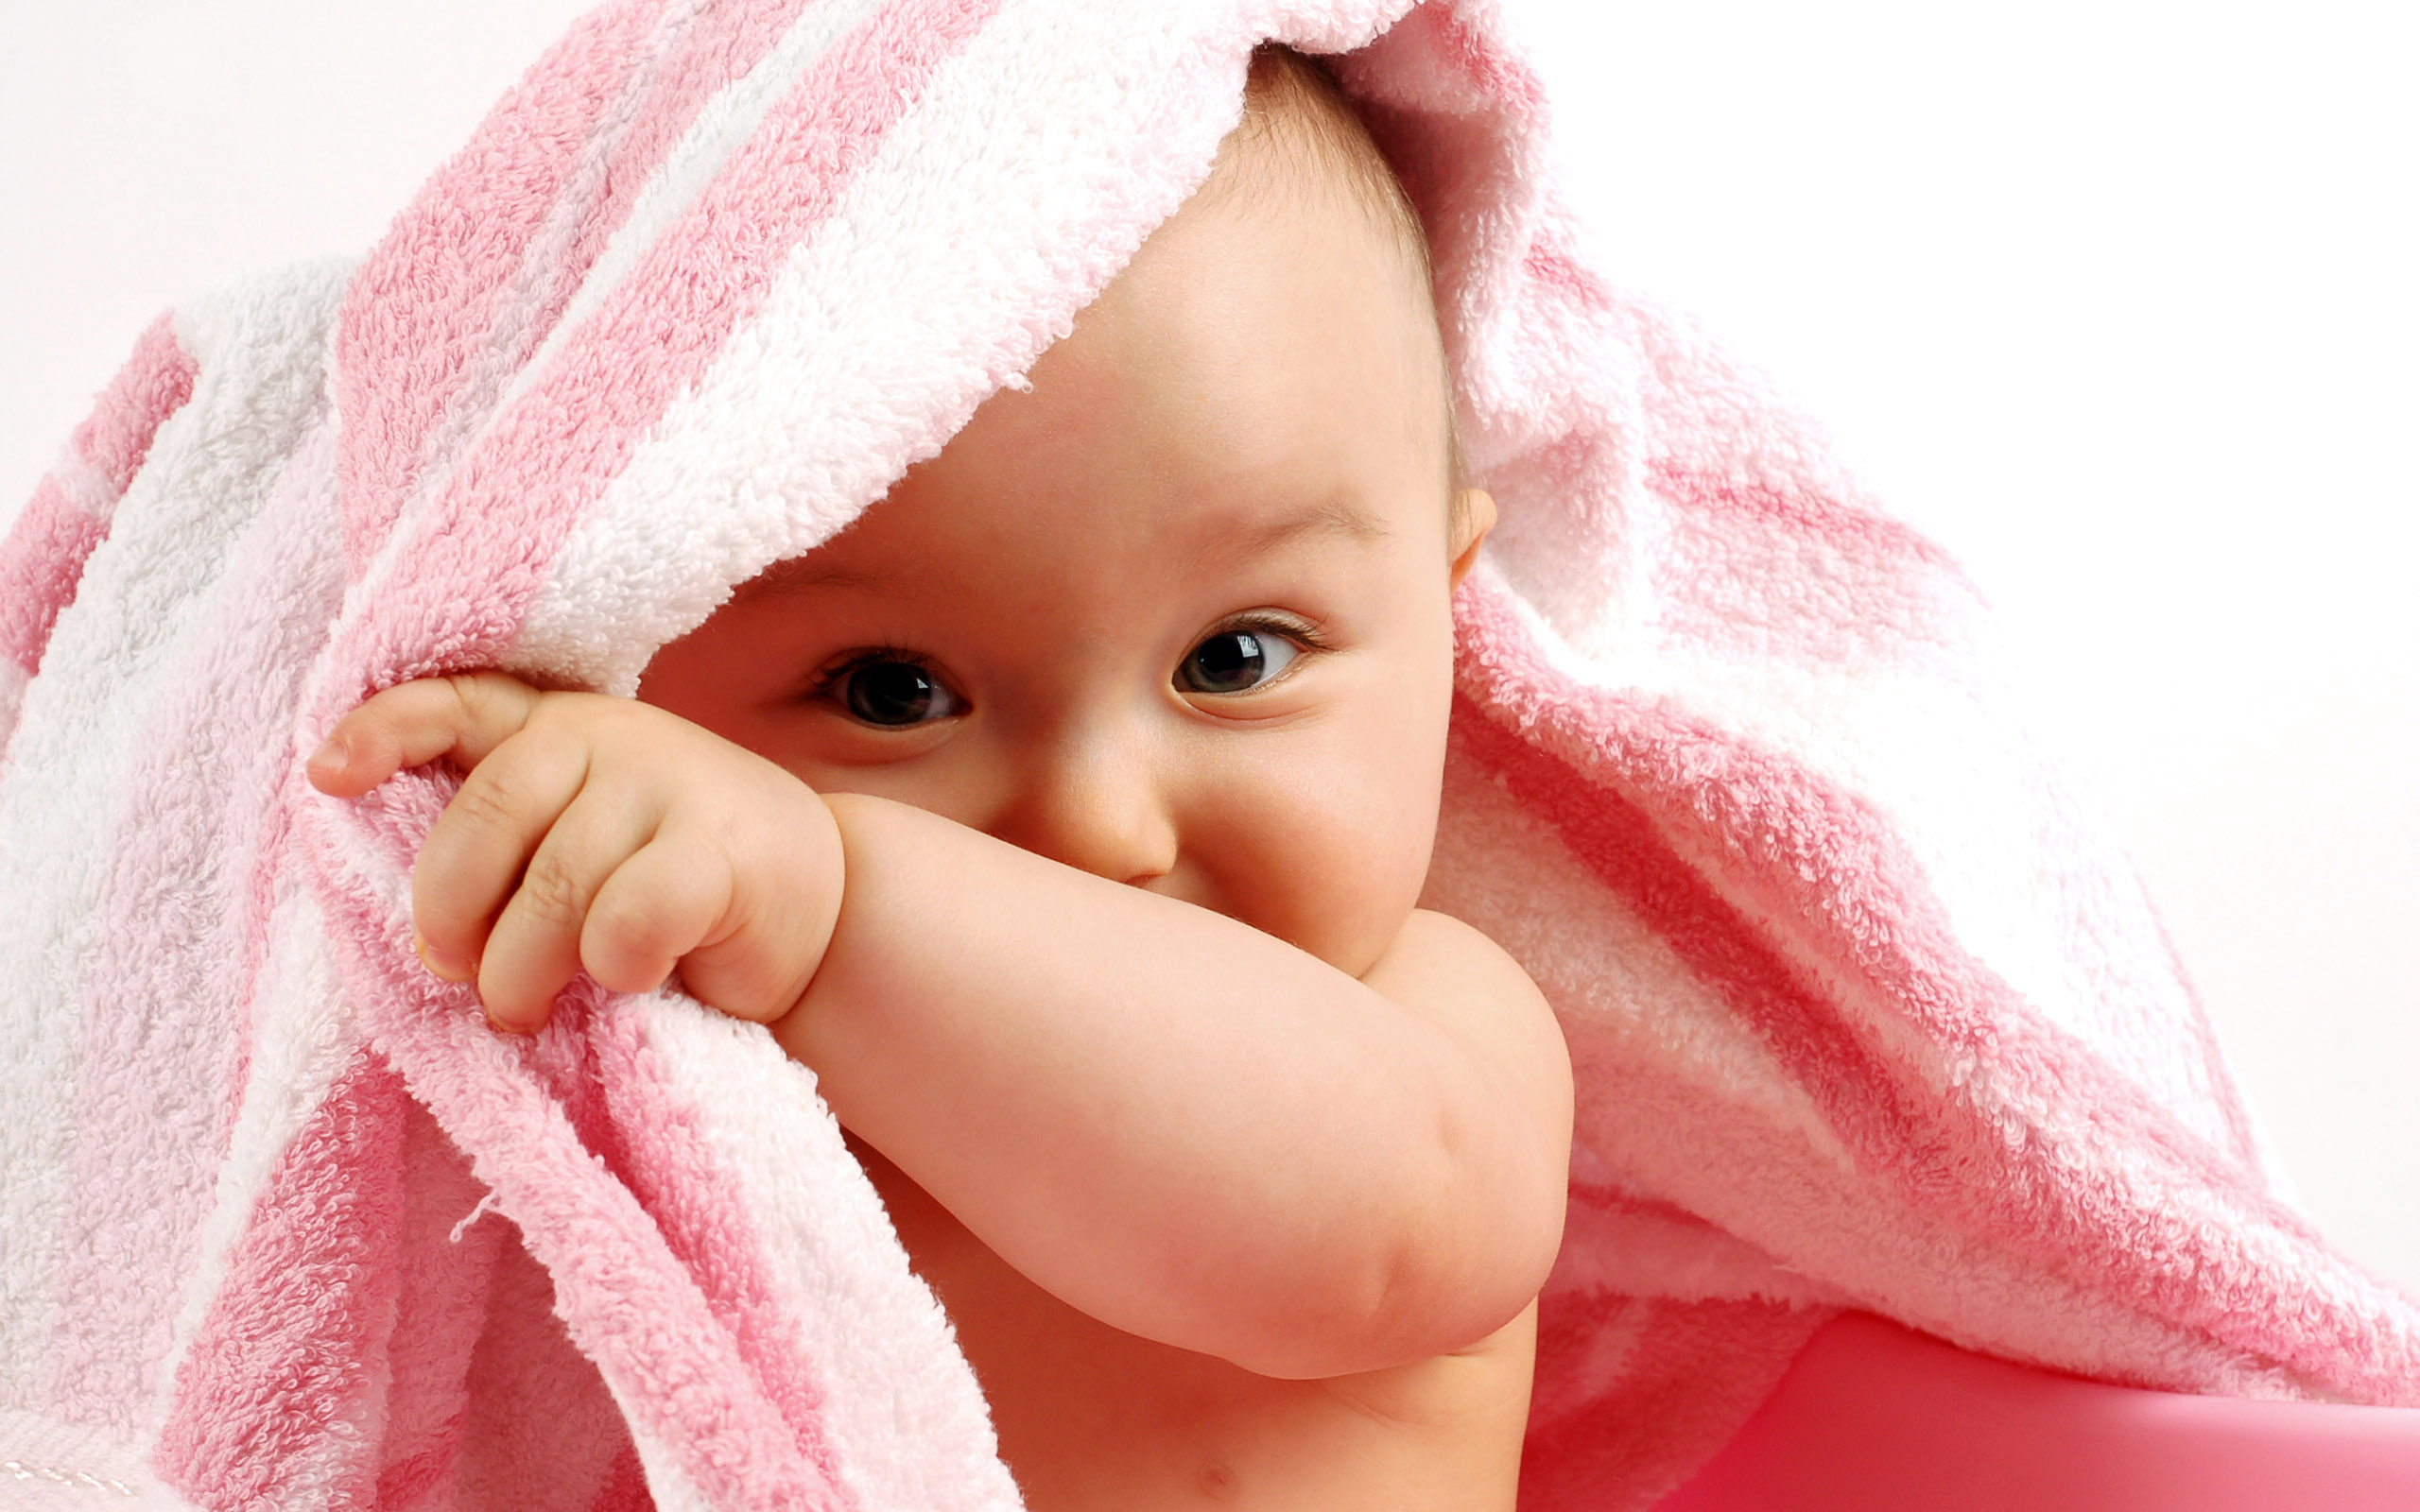 Cute Baby Boy Wallpaper Wallpaper High Definition High Quality